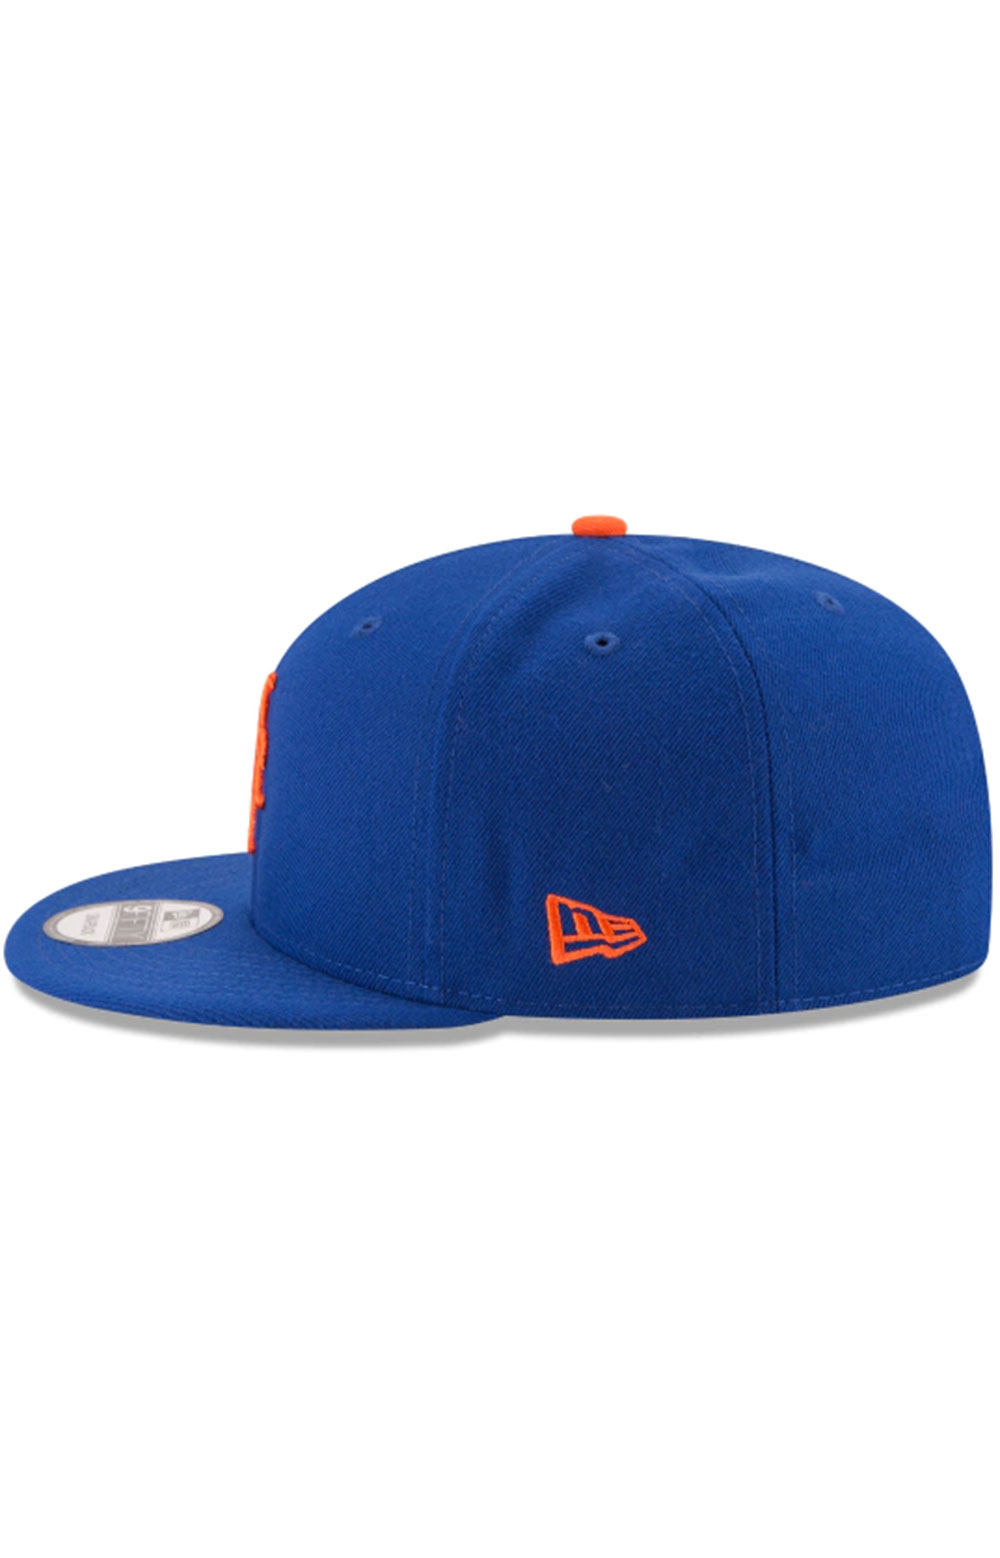 New York Mets Team Color Basic 9Fifty Snap-Back Hat  5